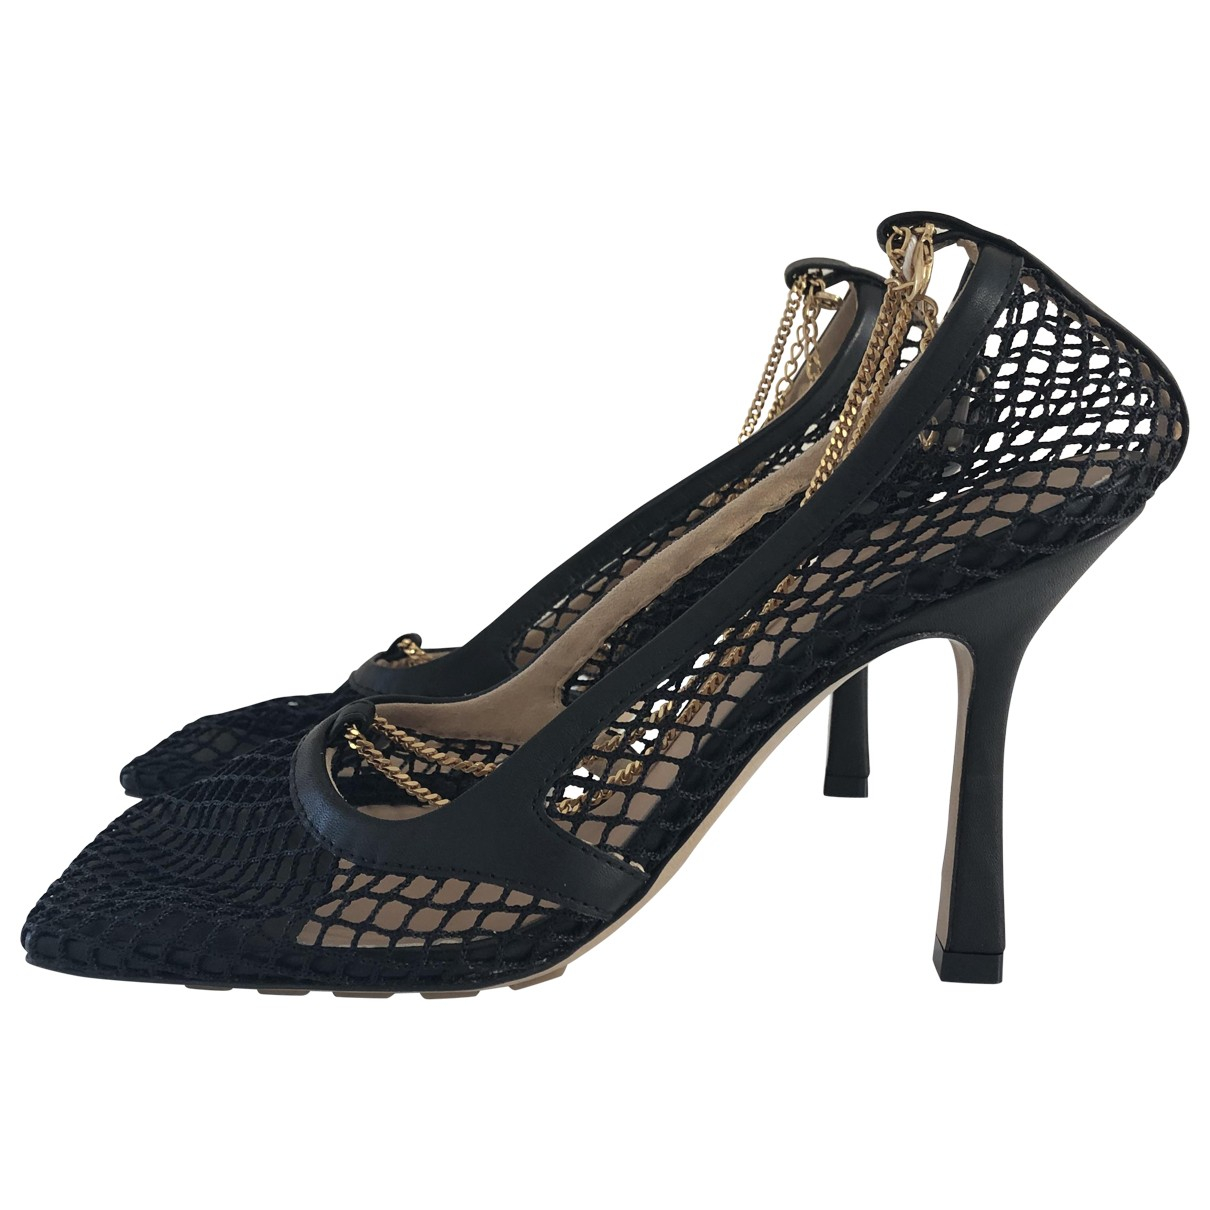 Bottega Veneta \N Black Cloth Sandals for Women 37 EU